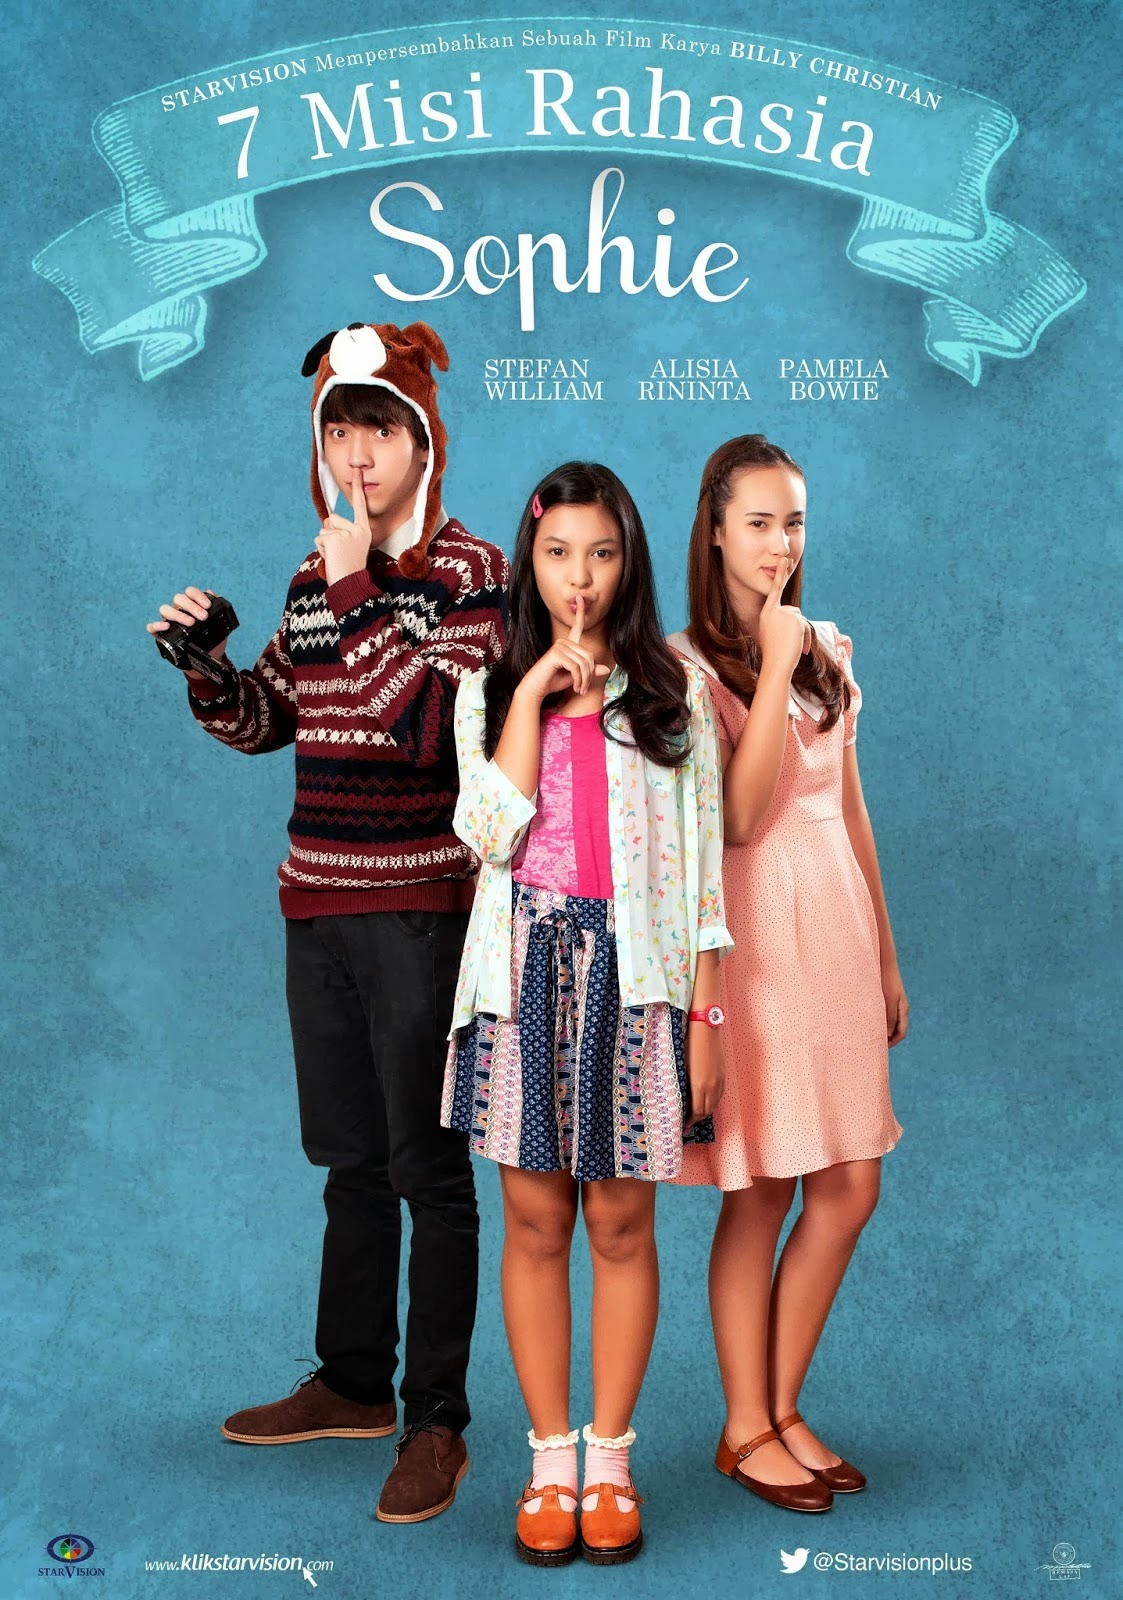 Film Terbaru 7 Misi Rahasia Sophie - Indo Movie 2014